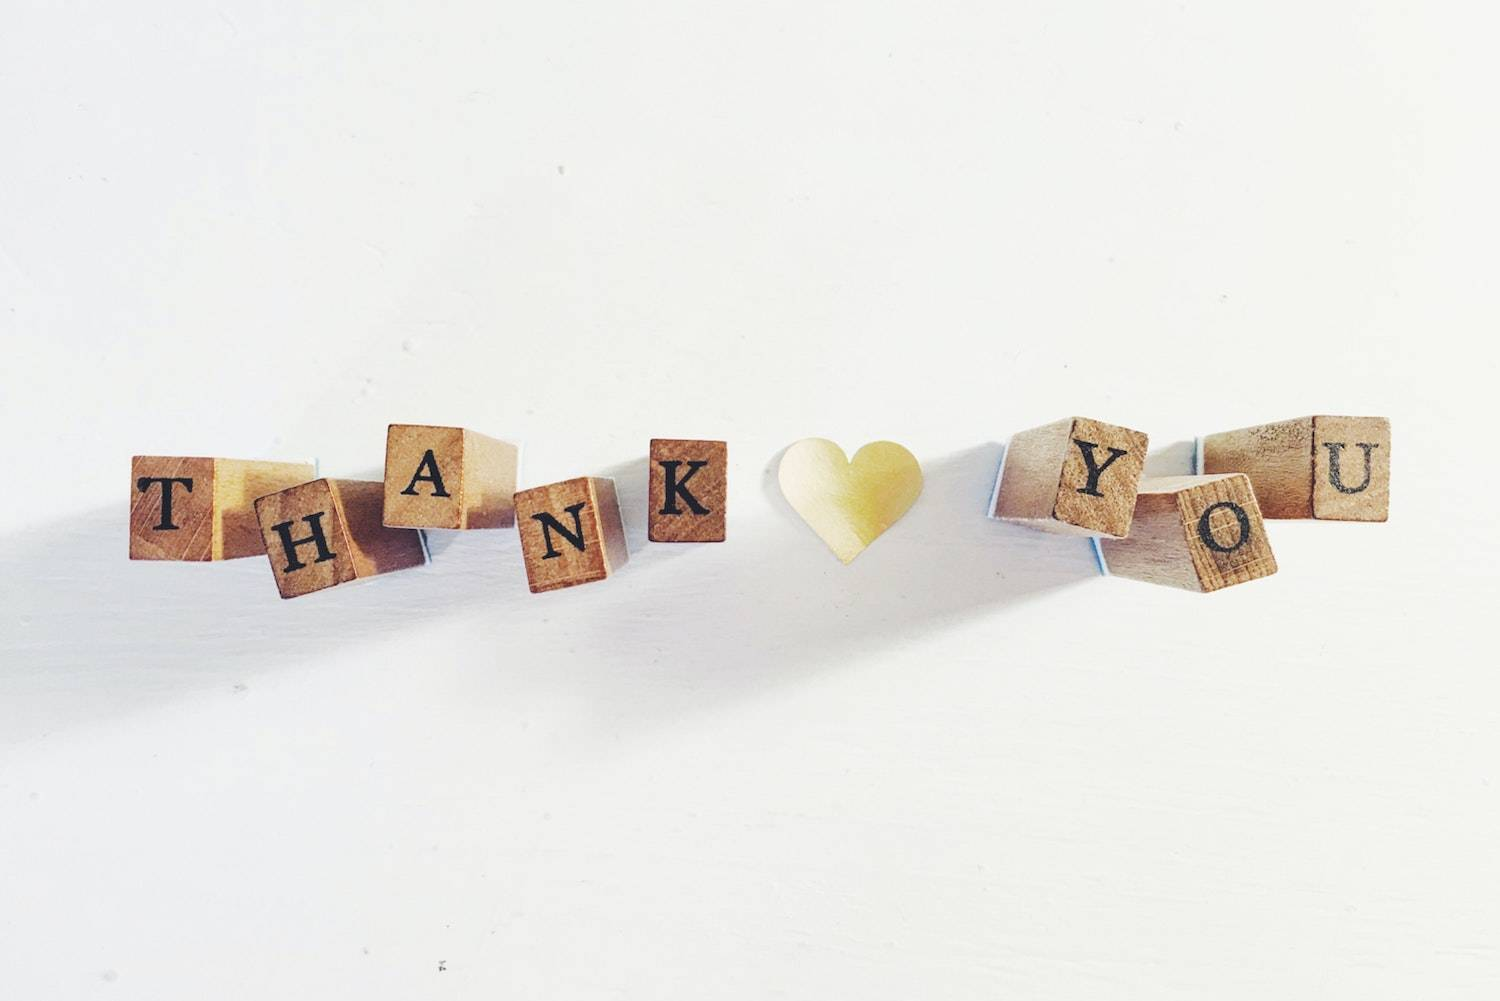 The Thank You List: scrabble letters spelling out the word thank you